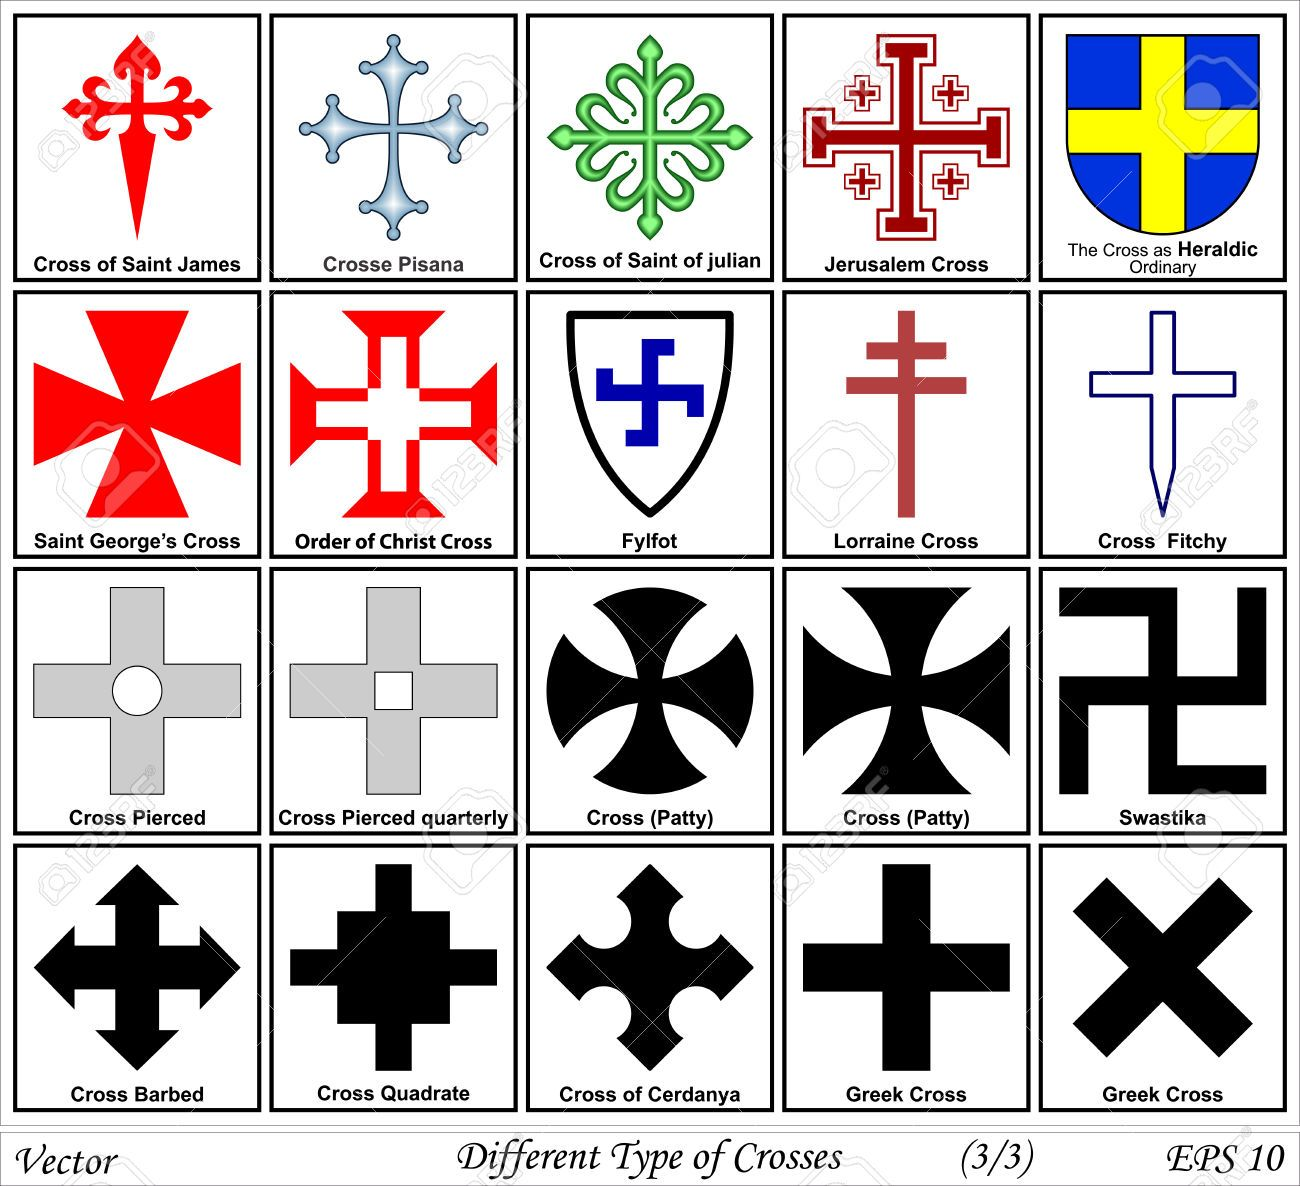 types of crosses google search cross design pinterest symbols knights templar and searching. Black Bedroom Furniture Sets. Home Design Ideas